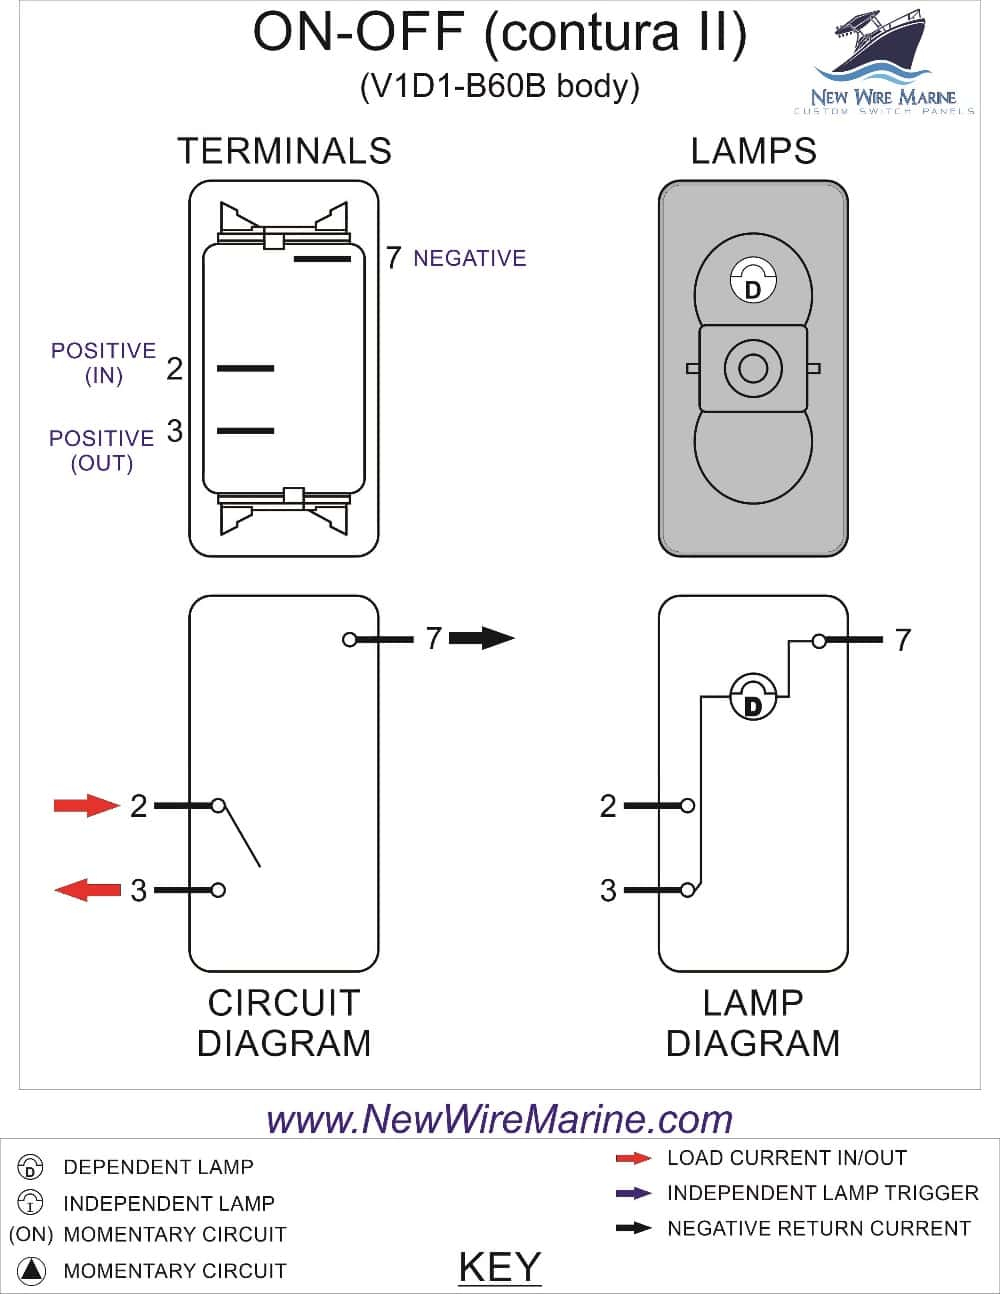 Rocker Switch Wiring Diagrams | New Wire Marine - 8 Pin Rocker Switch Wiring Diagram